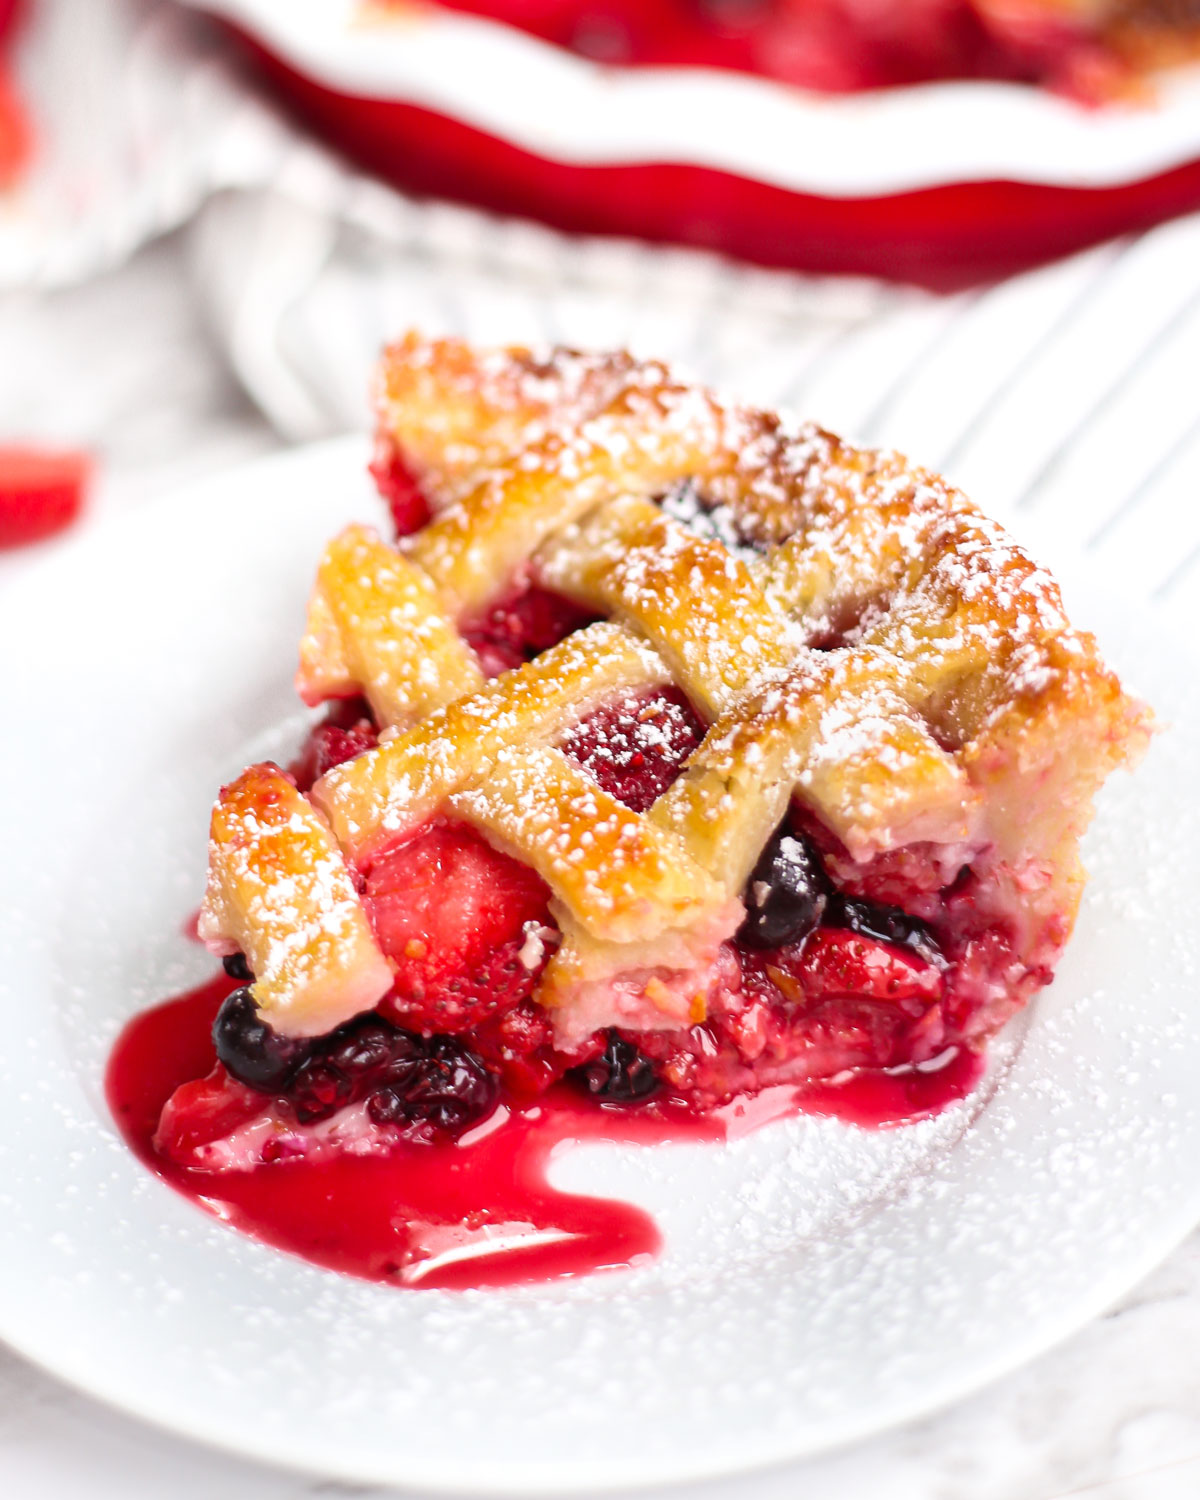 a slice of mixed berry pie served on a plate with powdered sugar